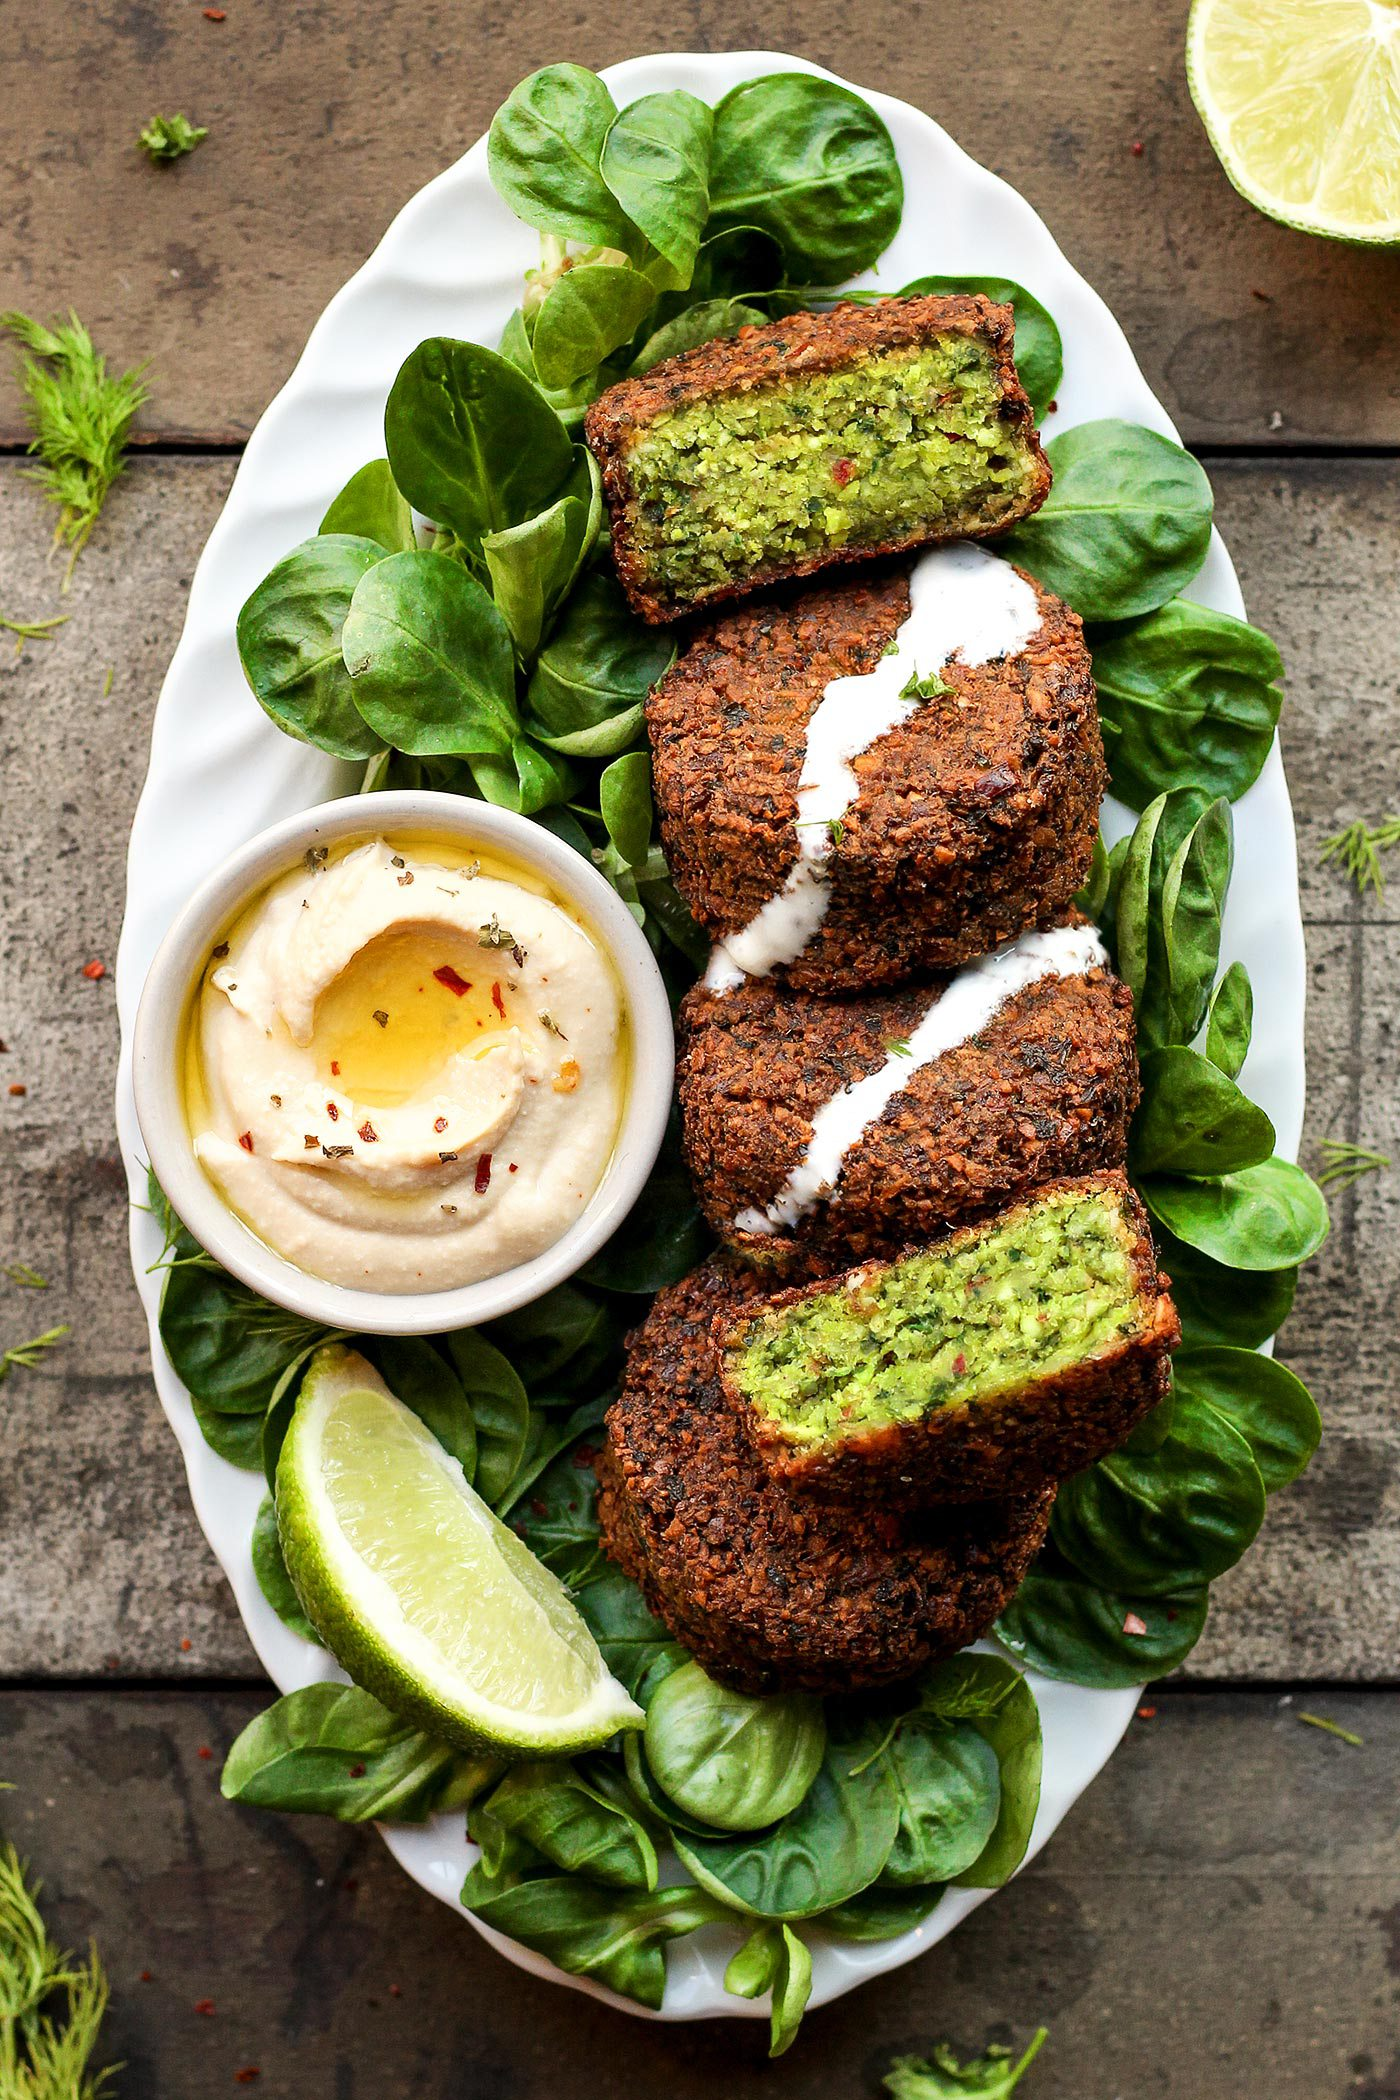 green falafel on plate with hummus